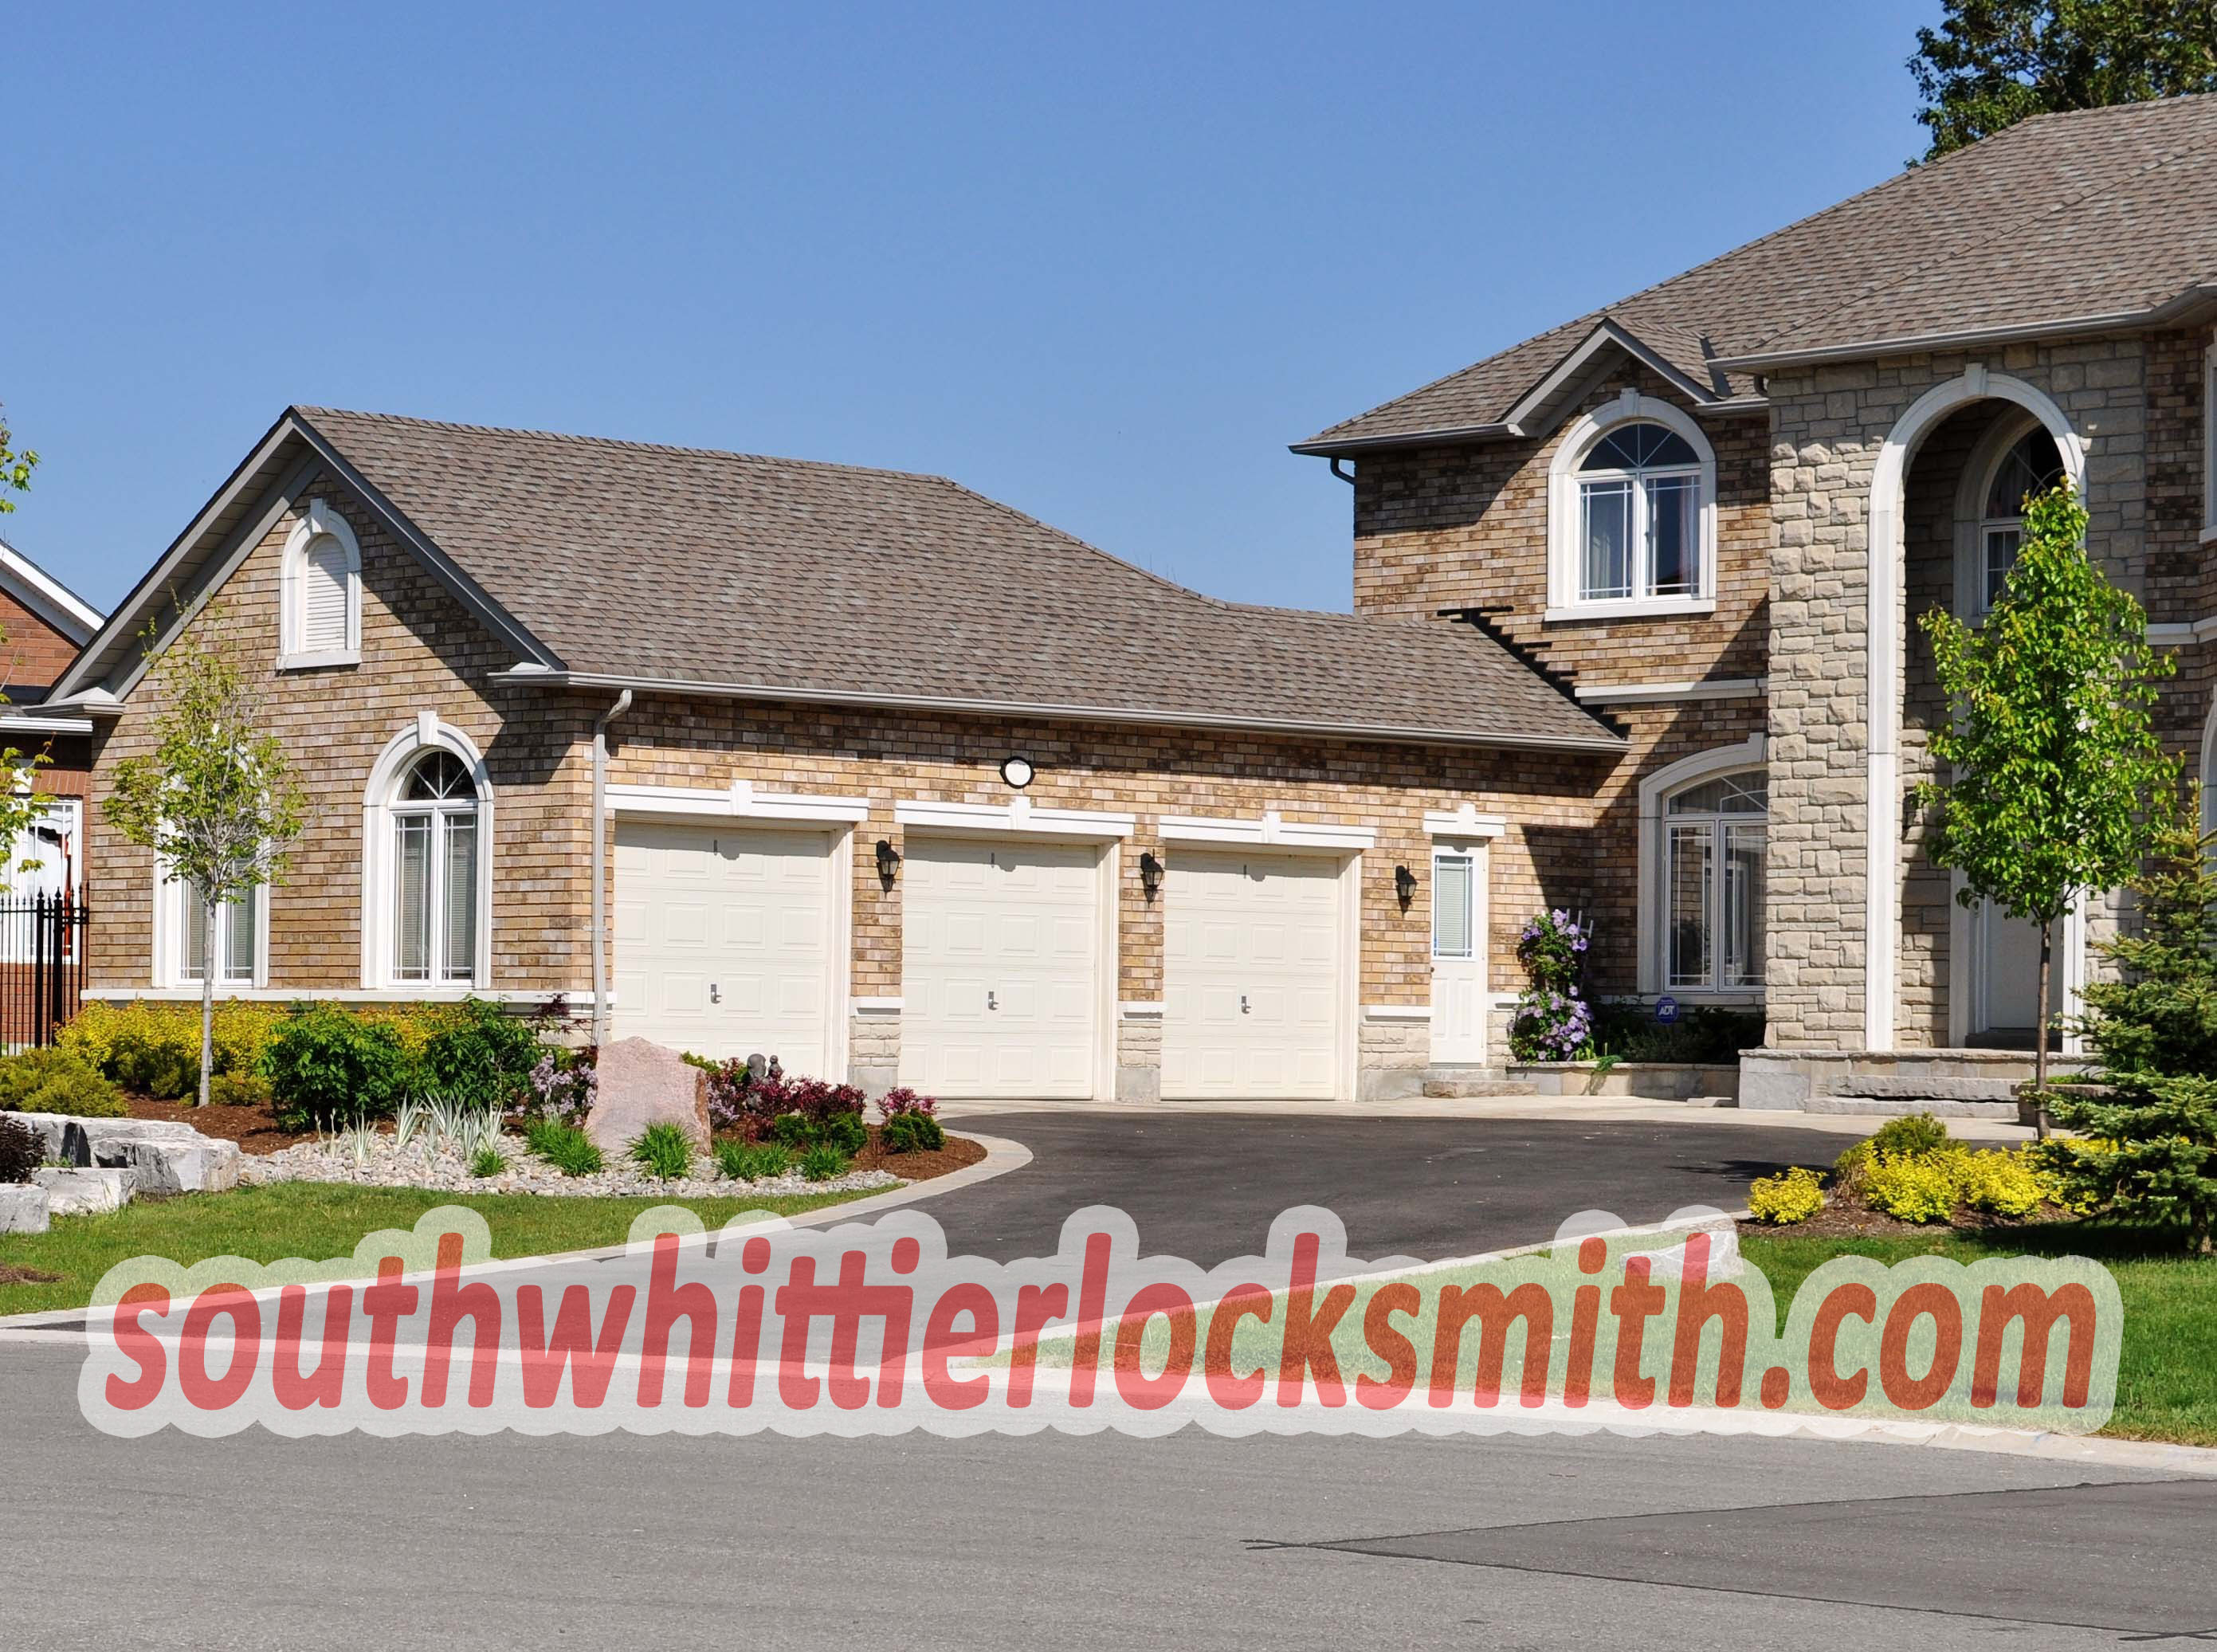 South Whittier Residential Locksmith